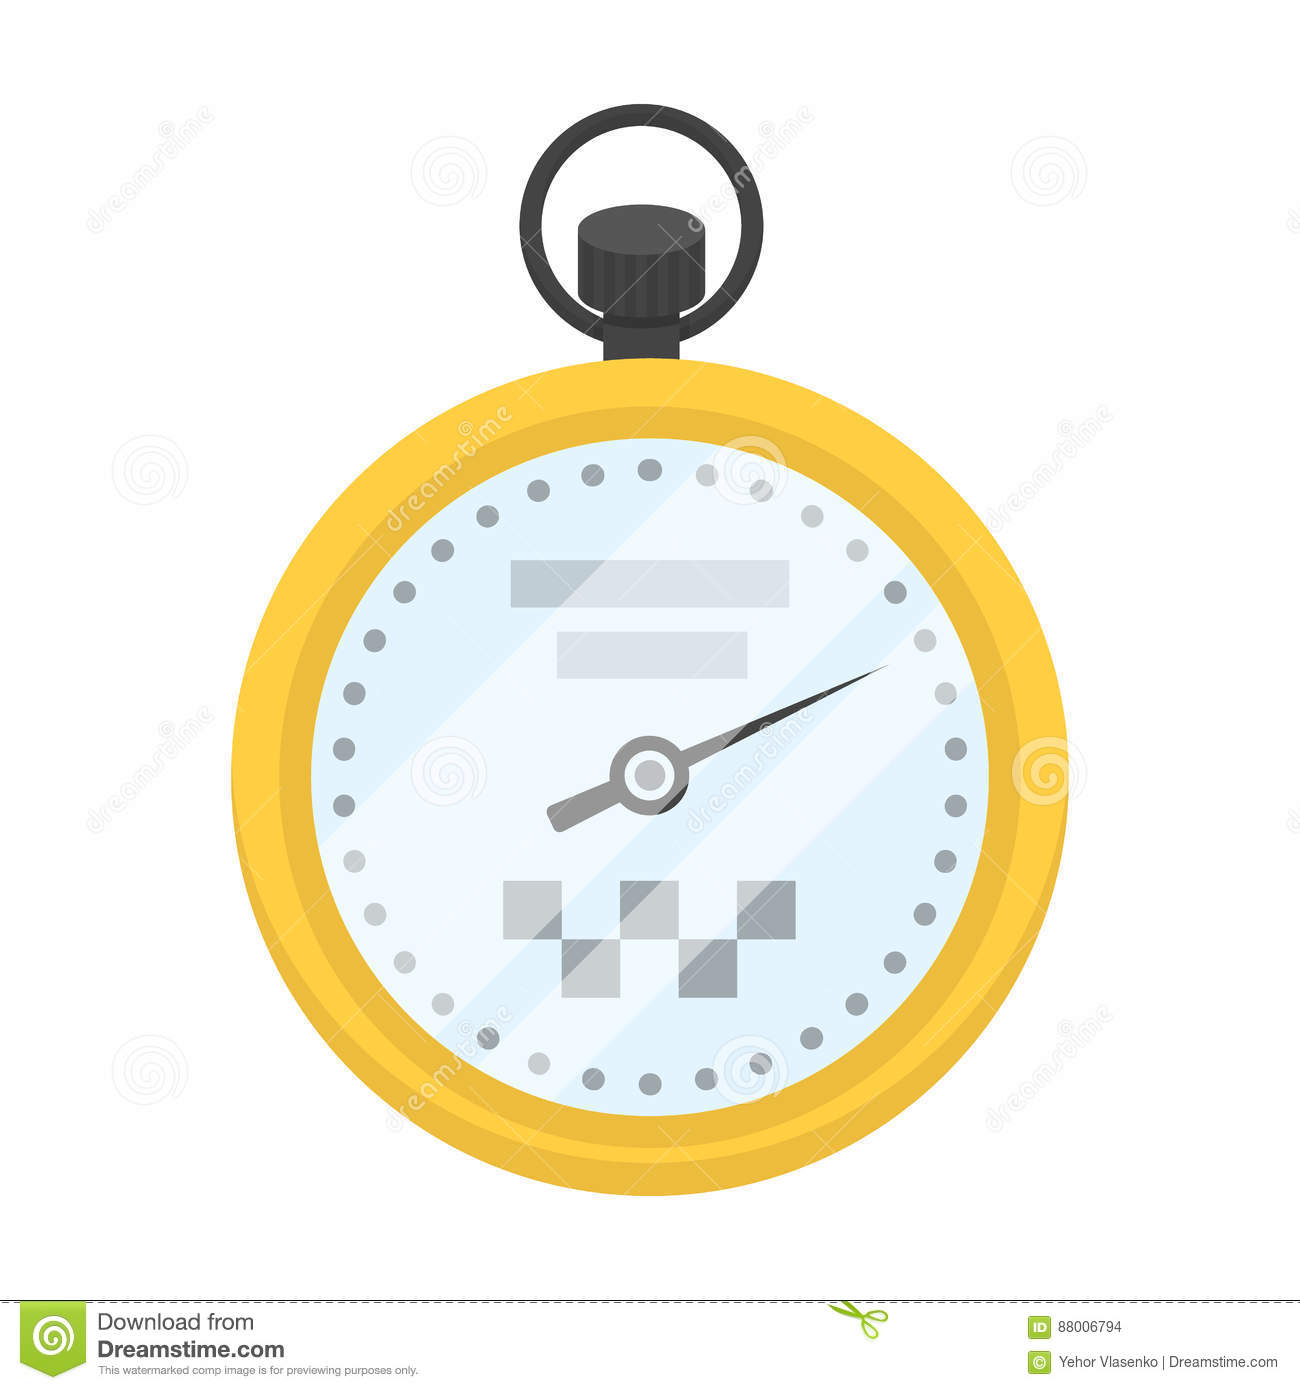 how to make a timer to measure time javascript